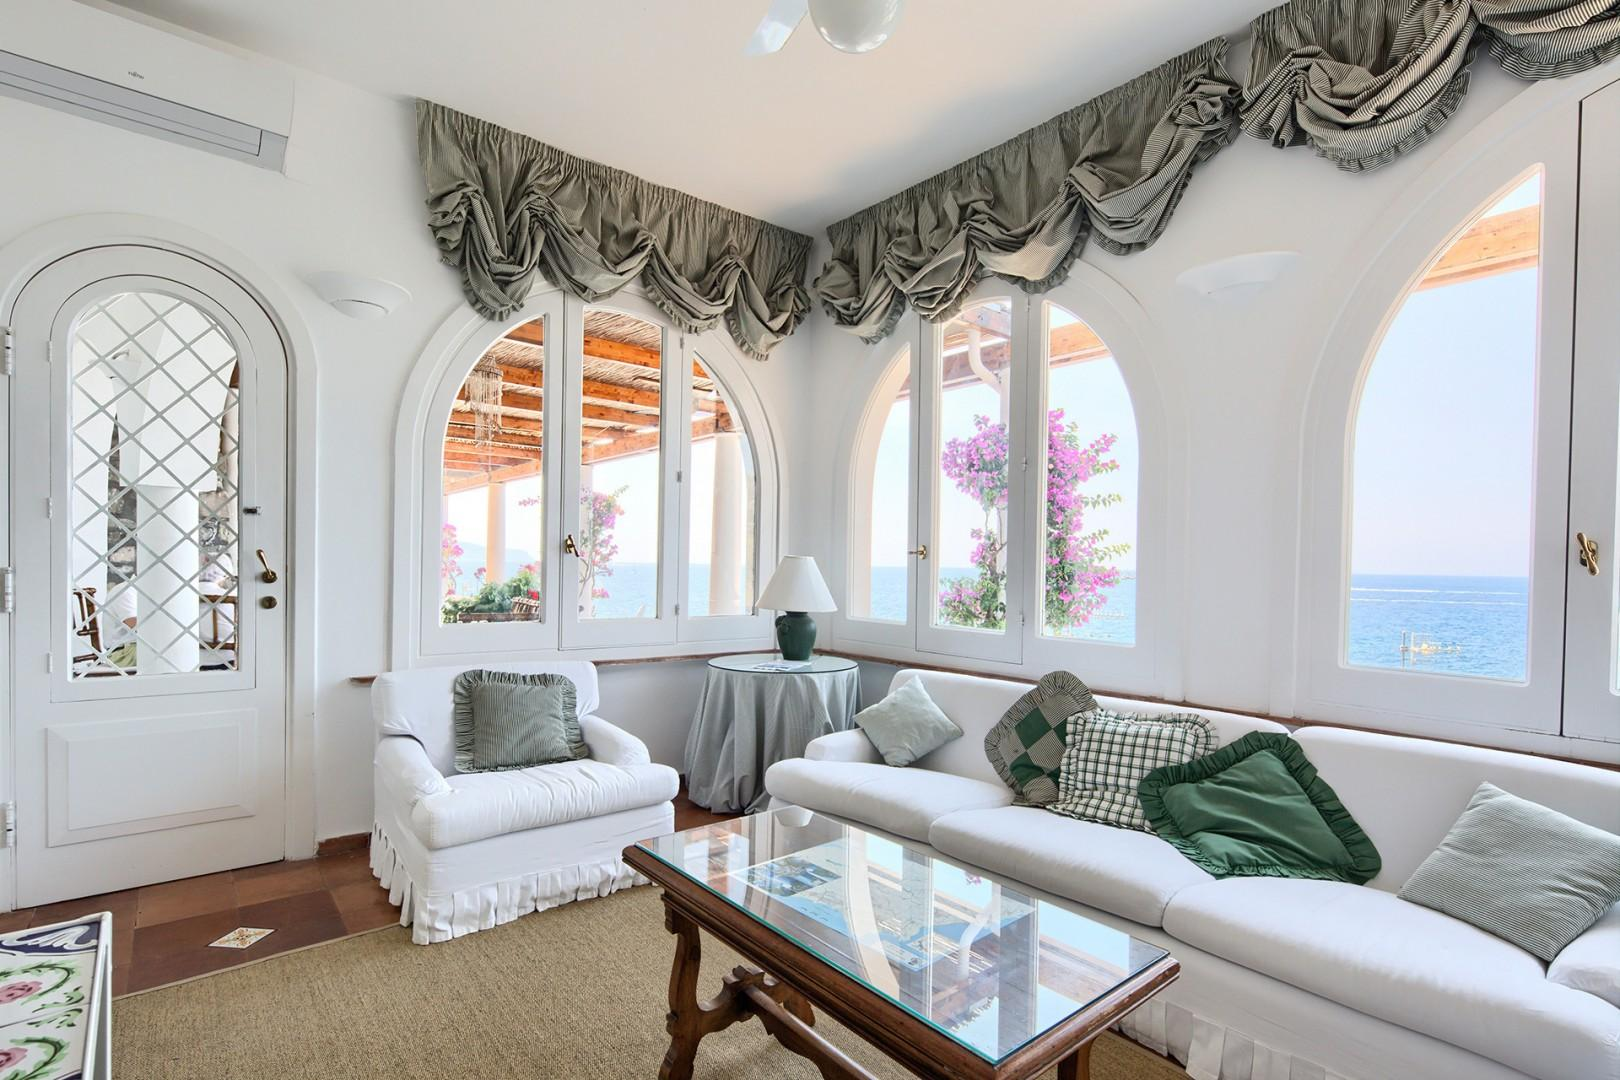 Cloudy white upholstery in living room overlooking the sea.